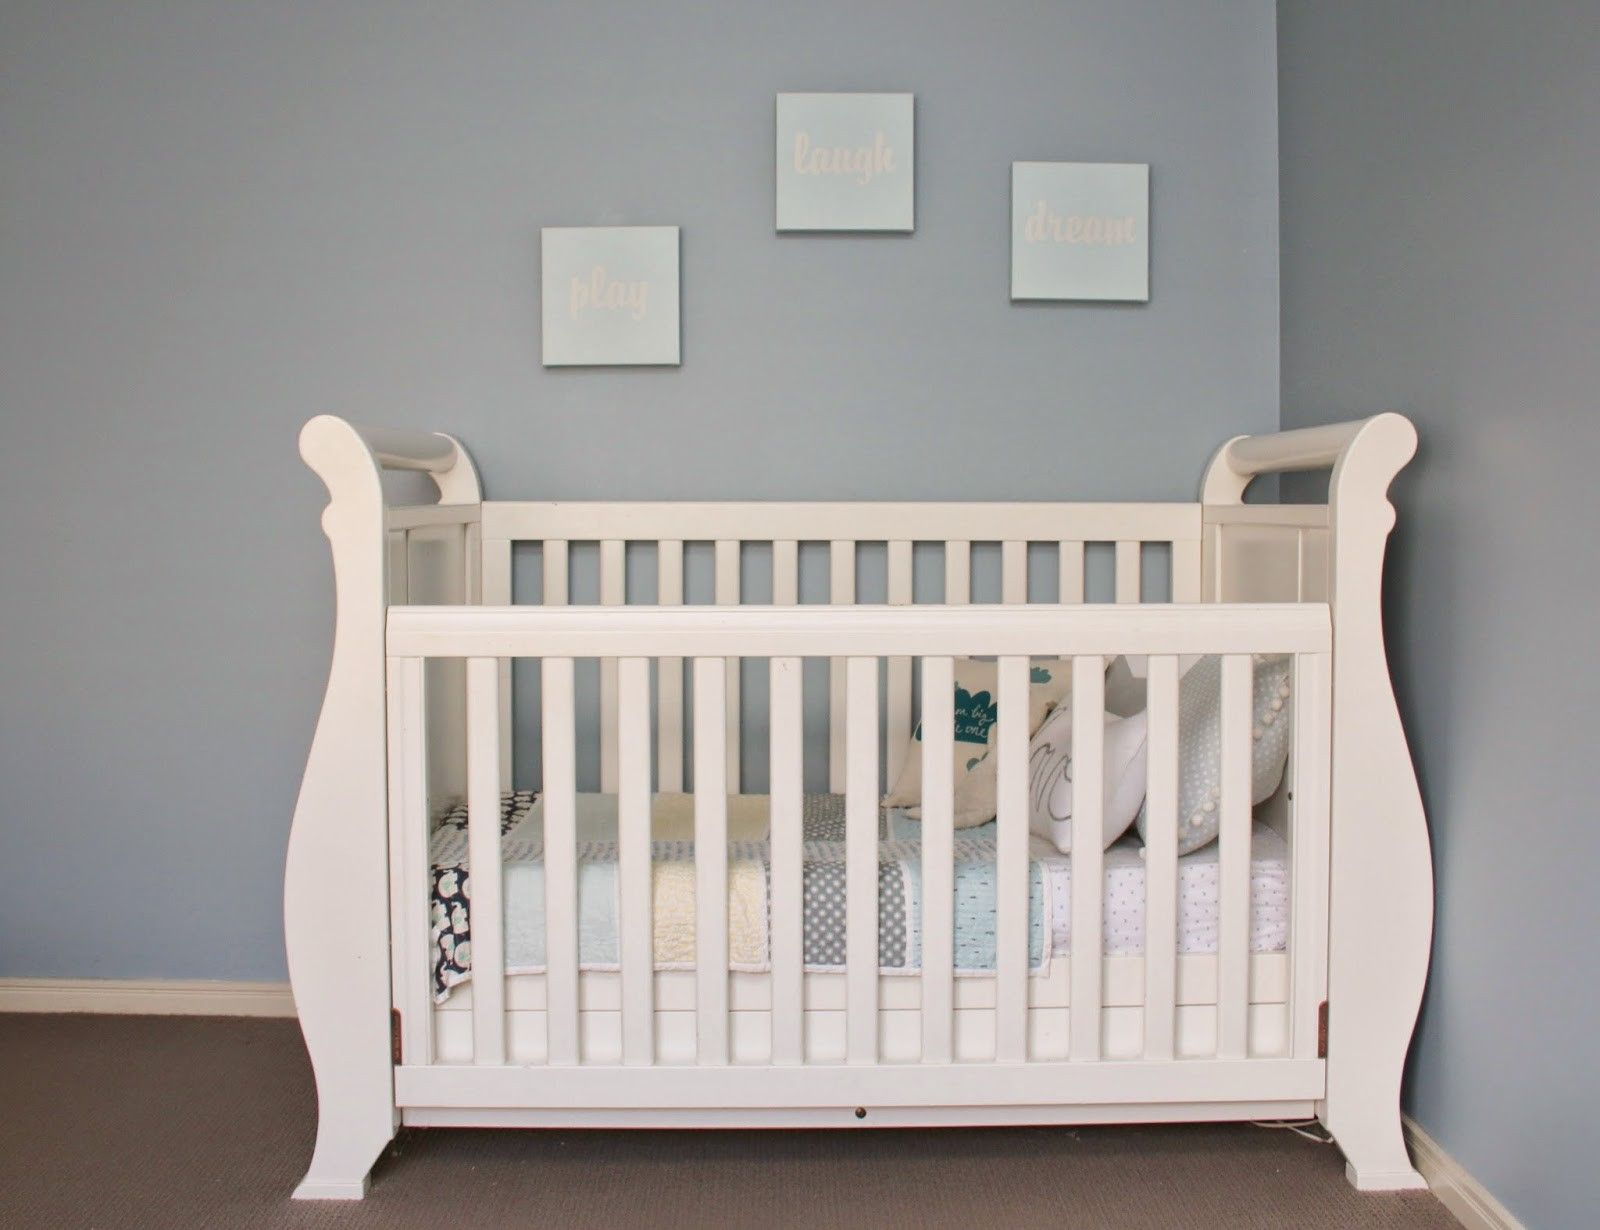 Super Nanny 4 in 1 Classic Sleigh Cot Bed - White | baby | Pinterest